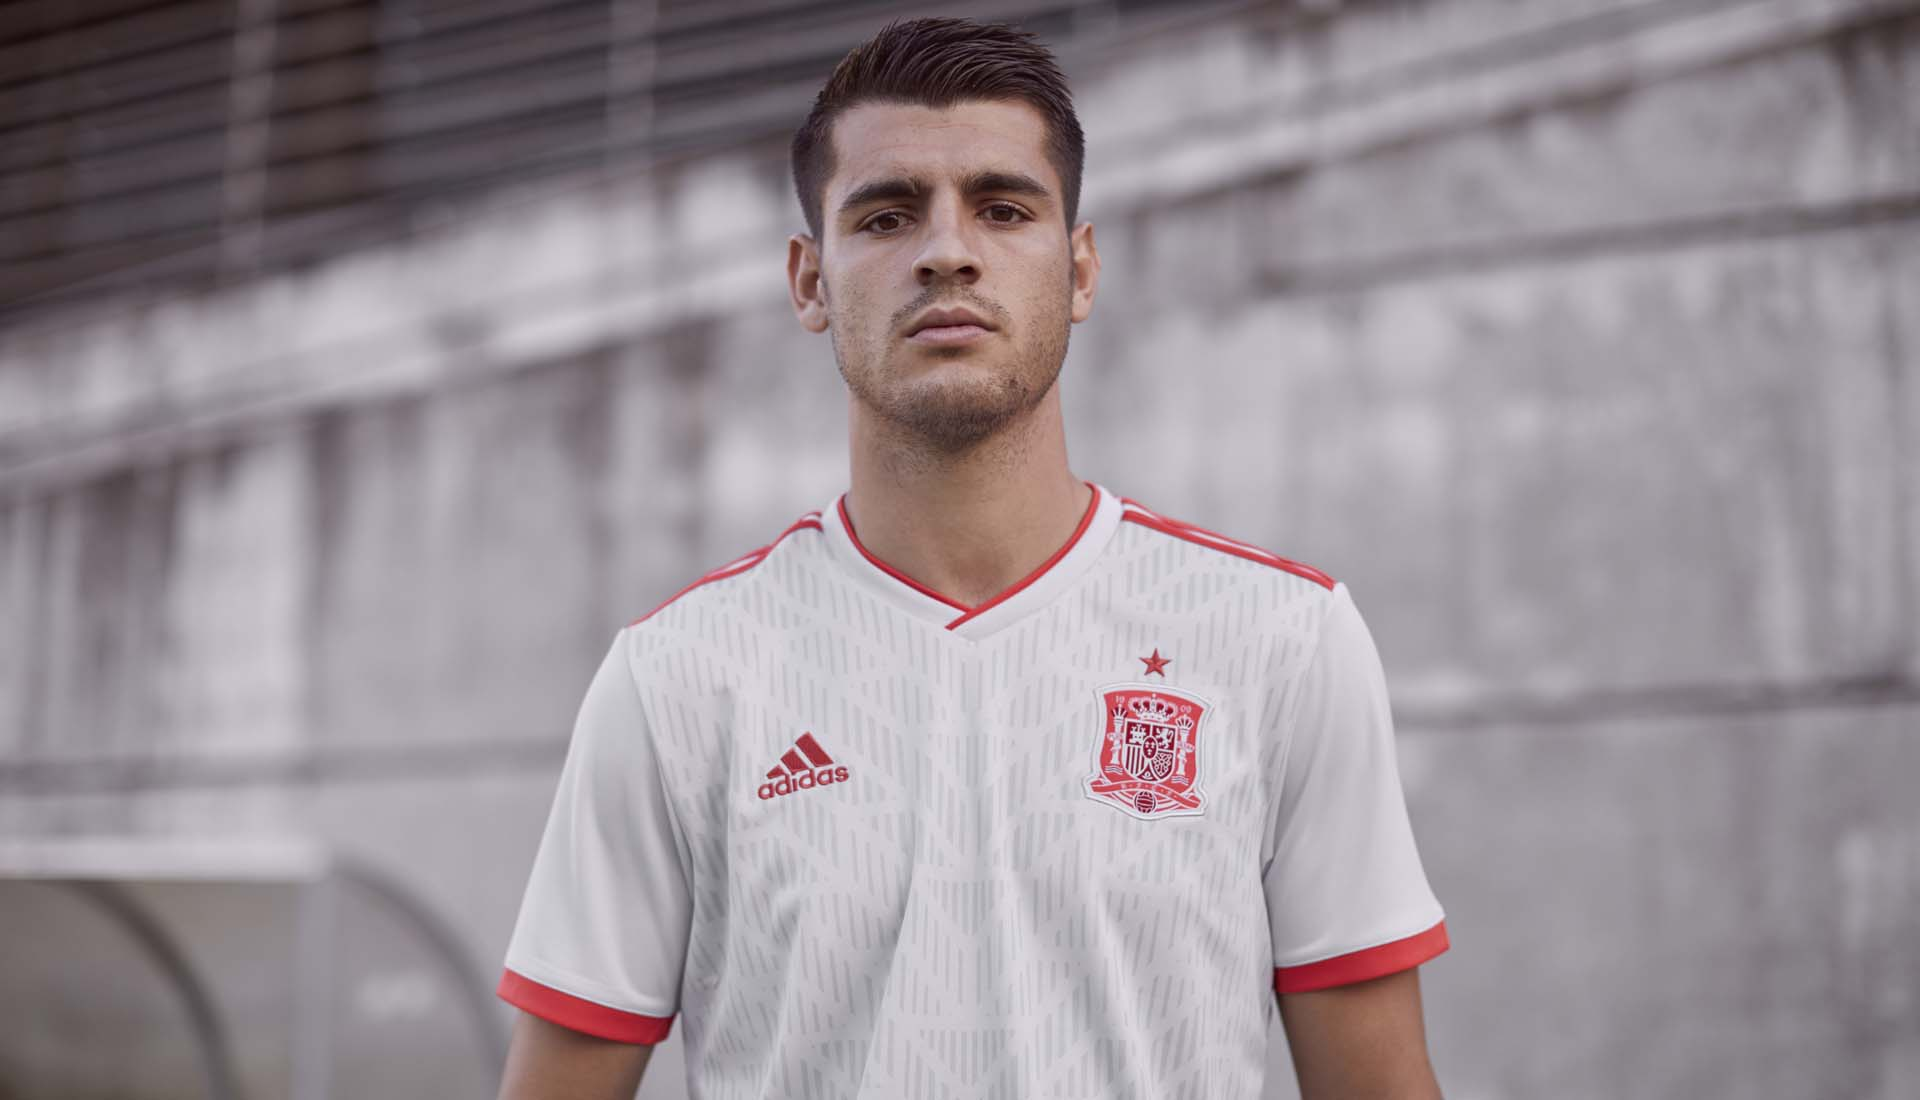 adidas Launch The Spain 2018 World Cup Away Shirt - SoccerBible 04560260e